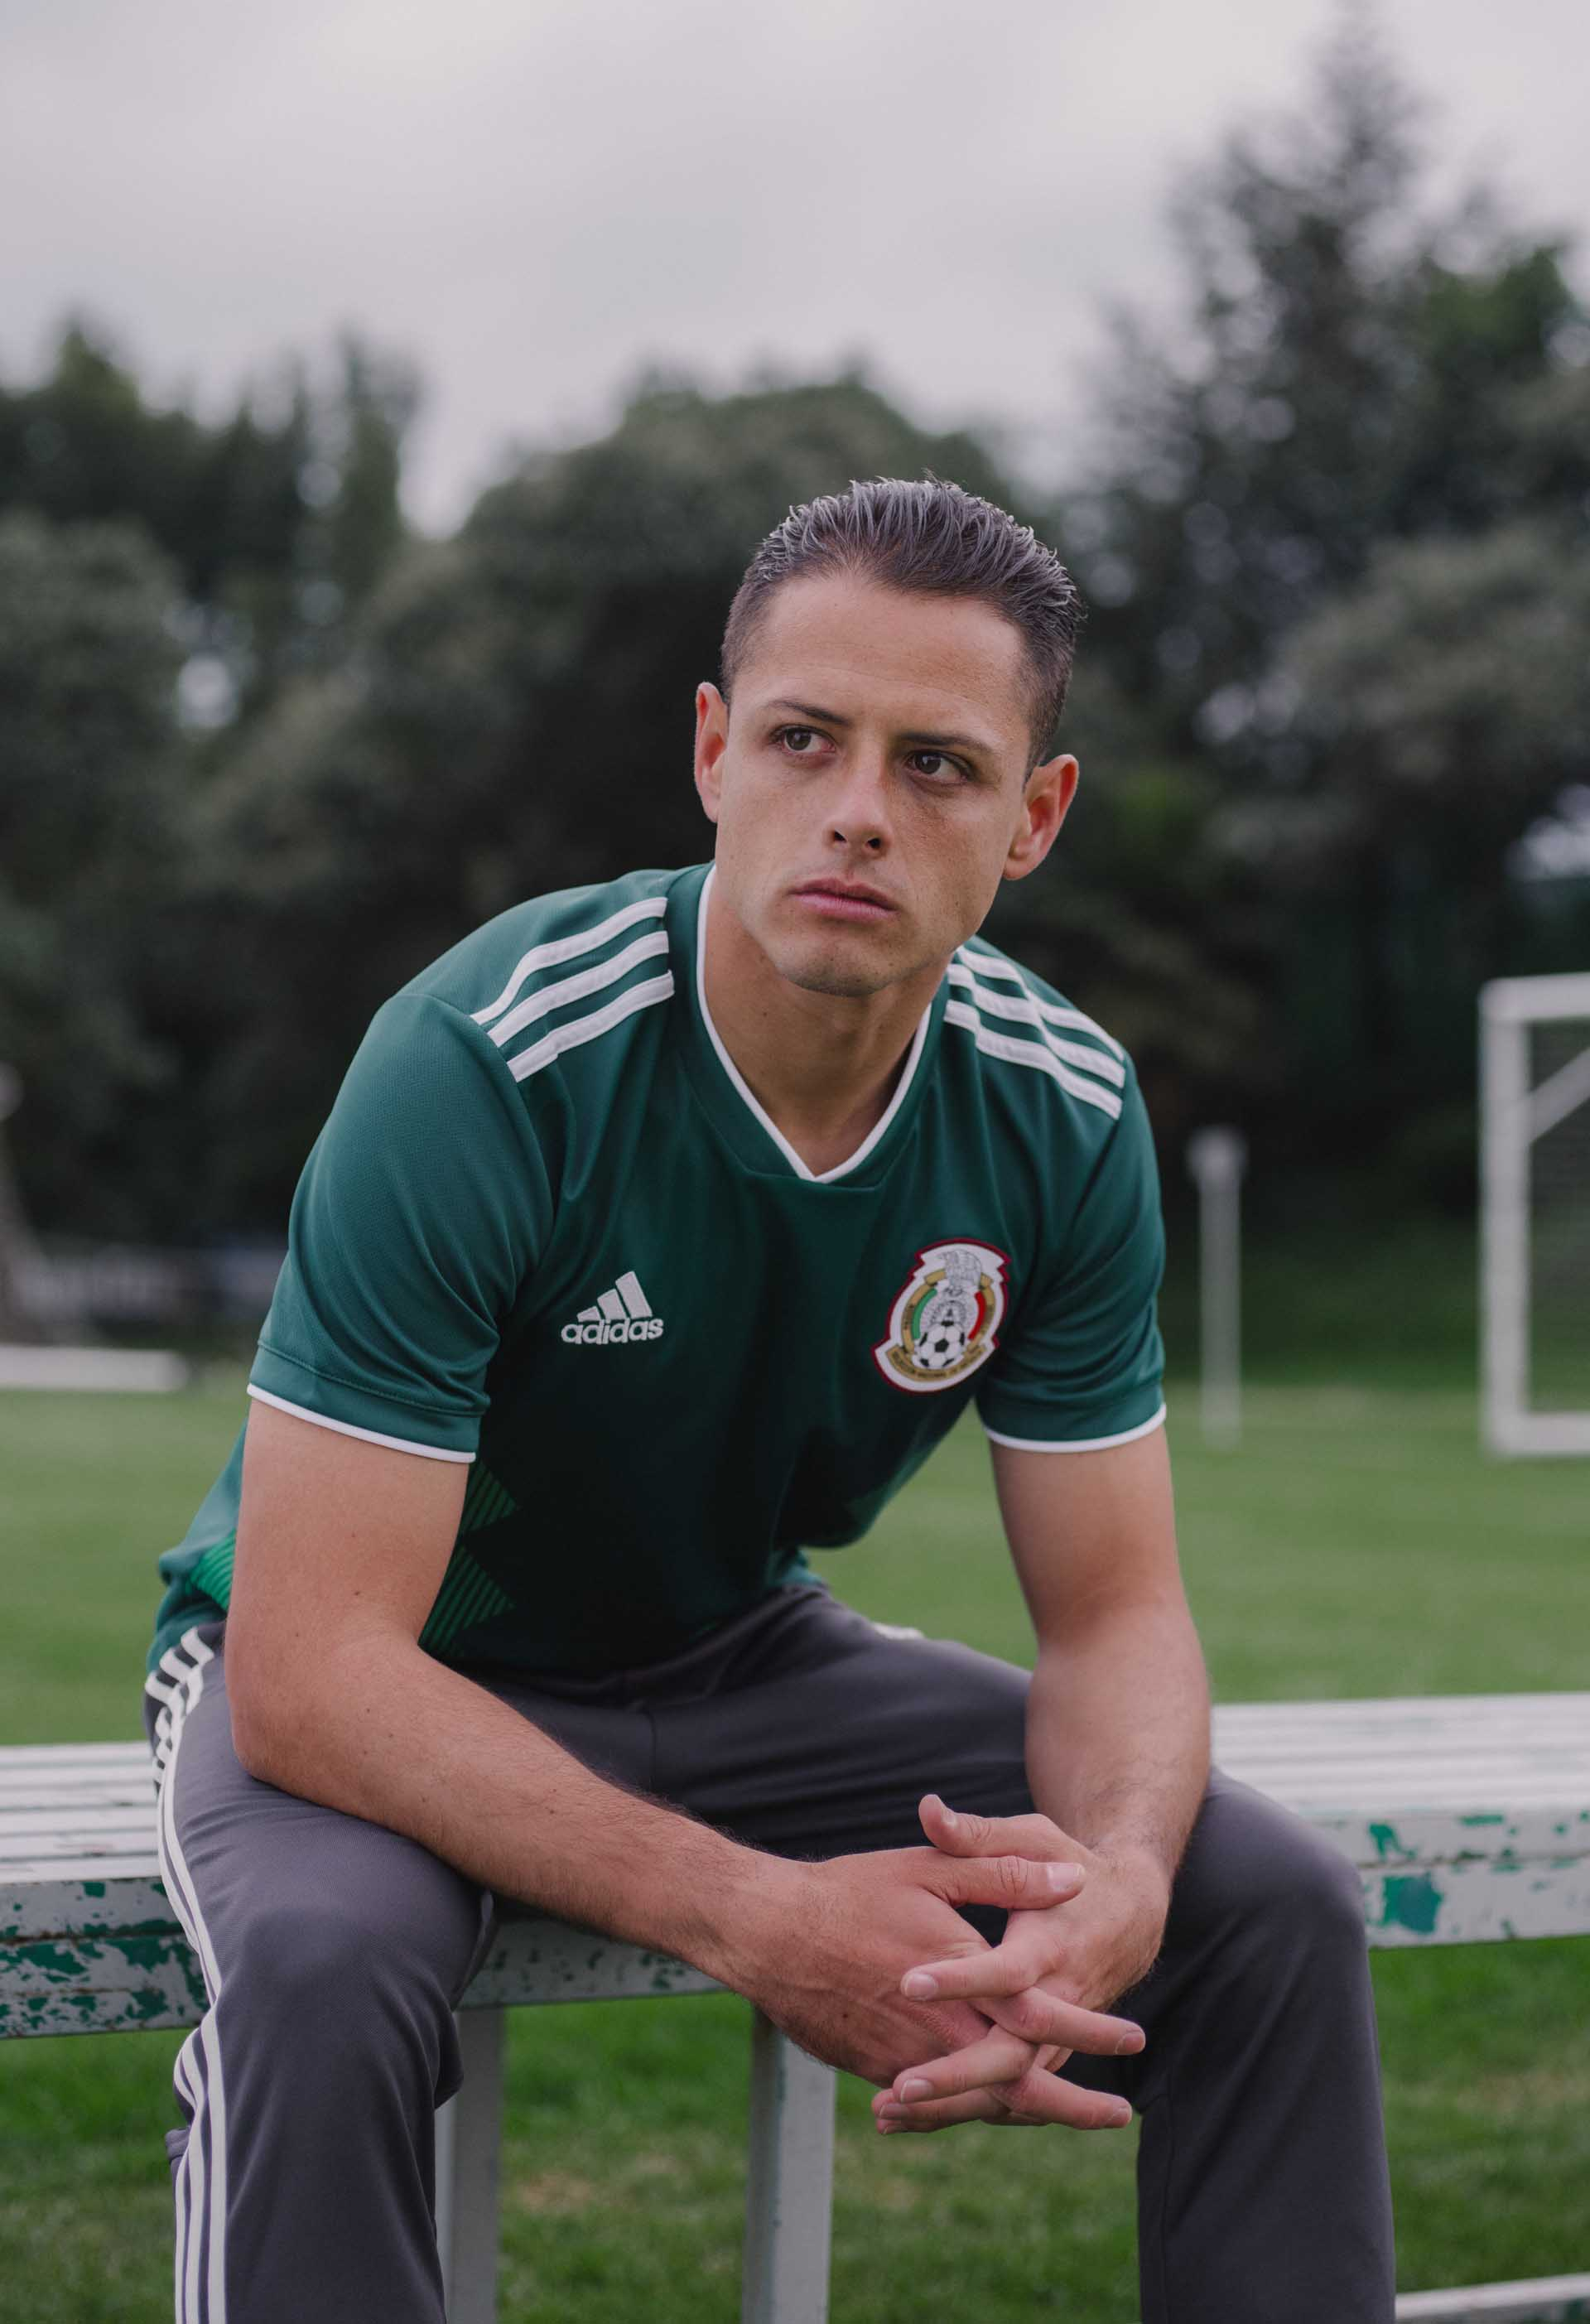 faa92f9d129 Mexico 2018 World Cup adidas Home Shirt - SoccerBible.